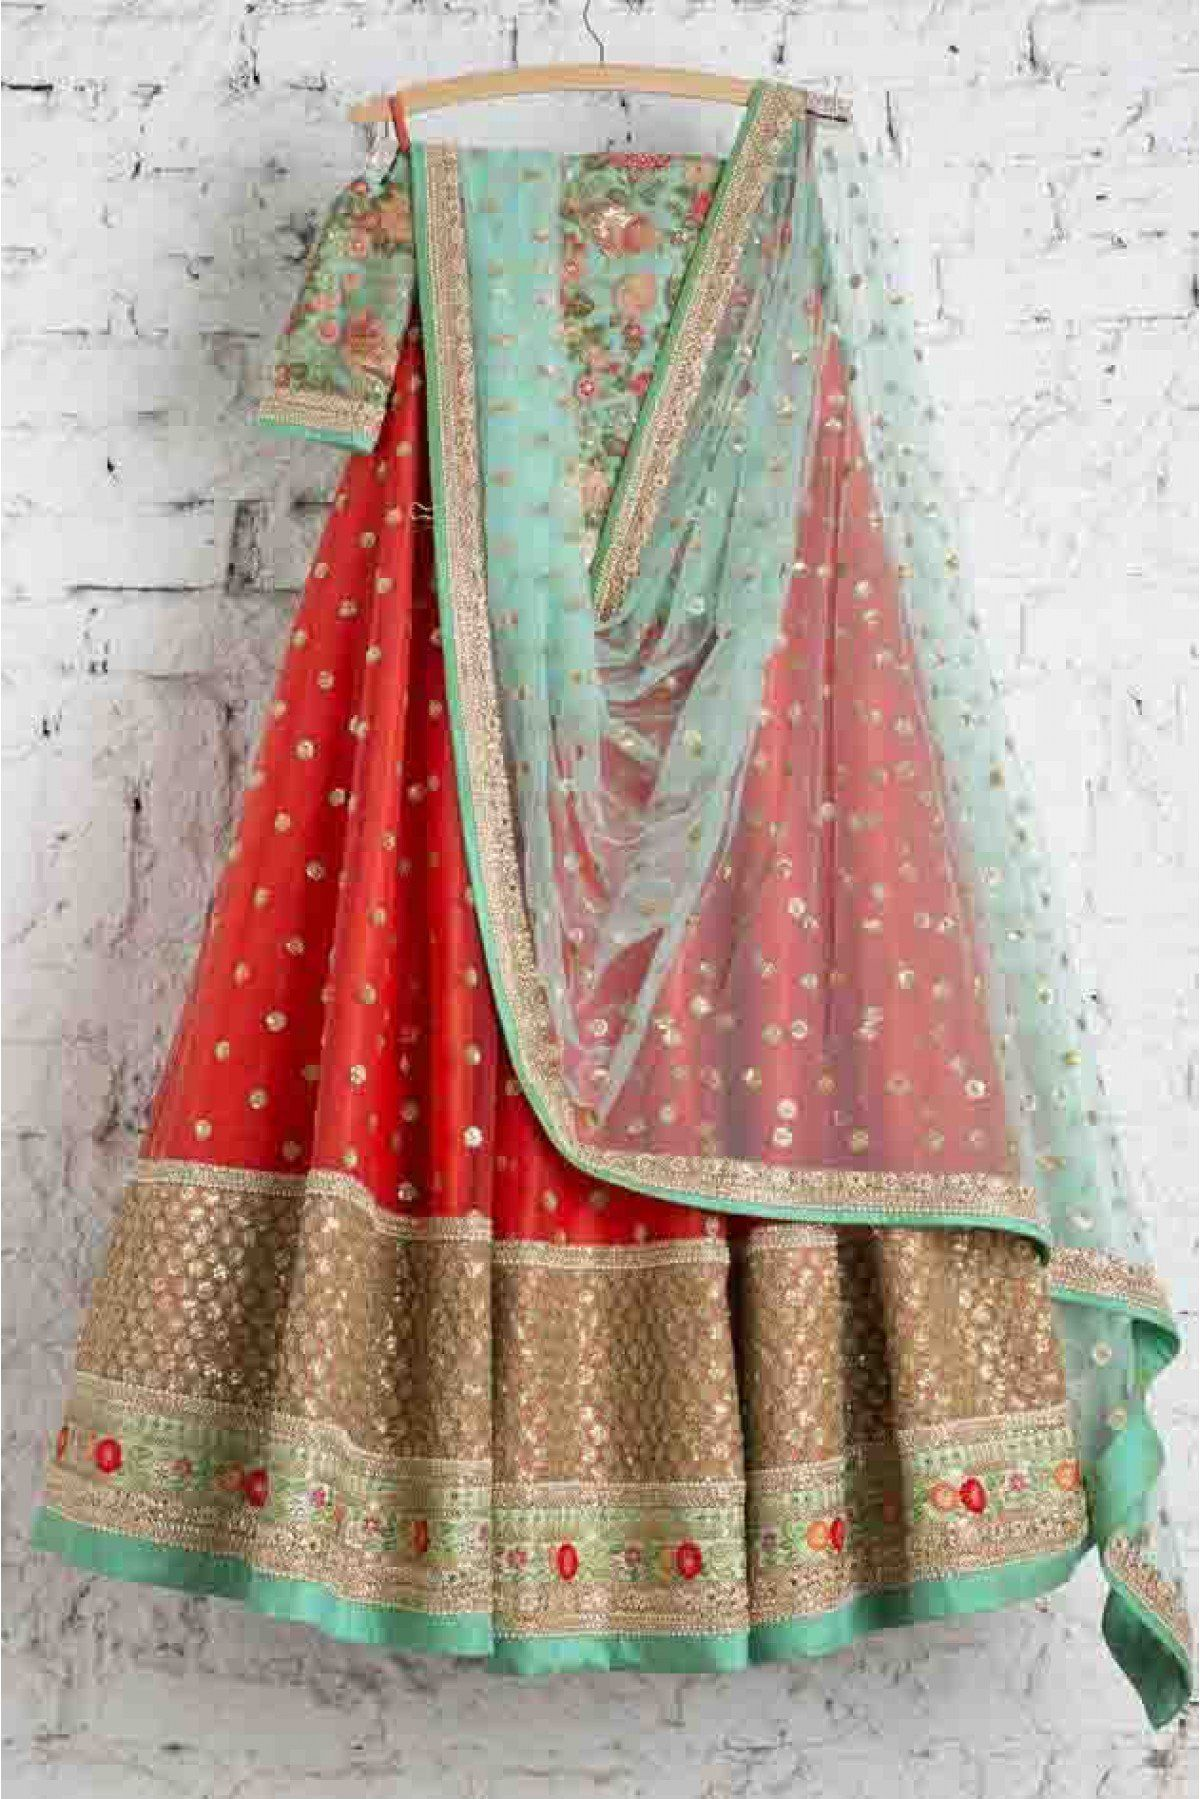 Embroidery Lehenga Choli In Red Colour Buy Net Embroidery Lehenga Choli In Red Colour for women @ . Worldwide Free Shipping Available!